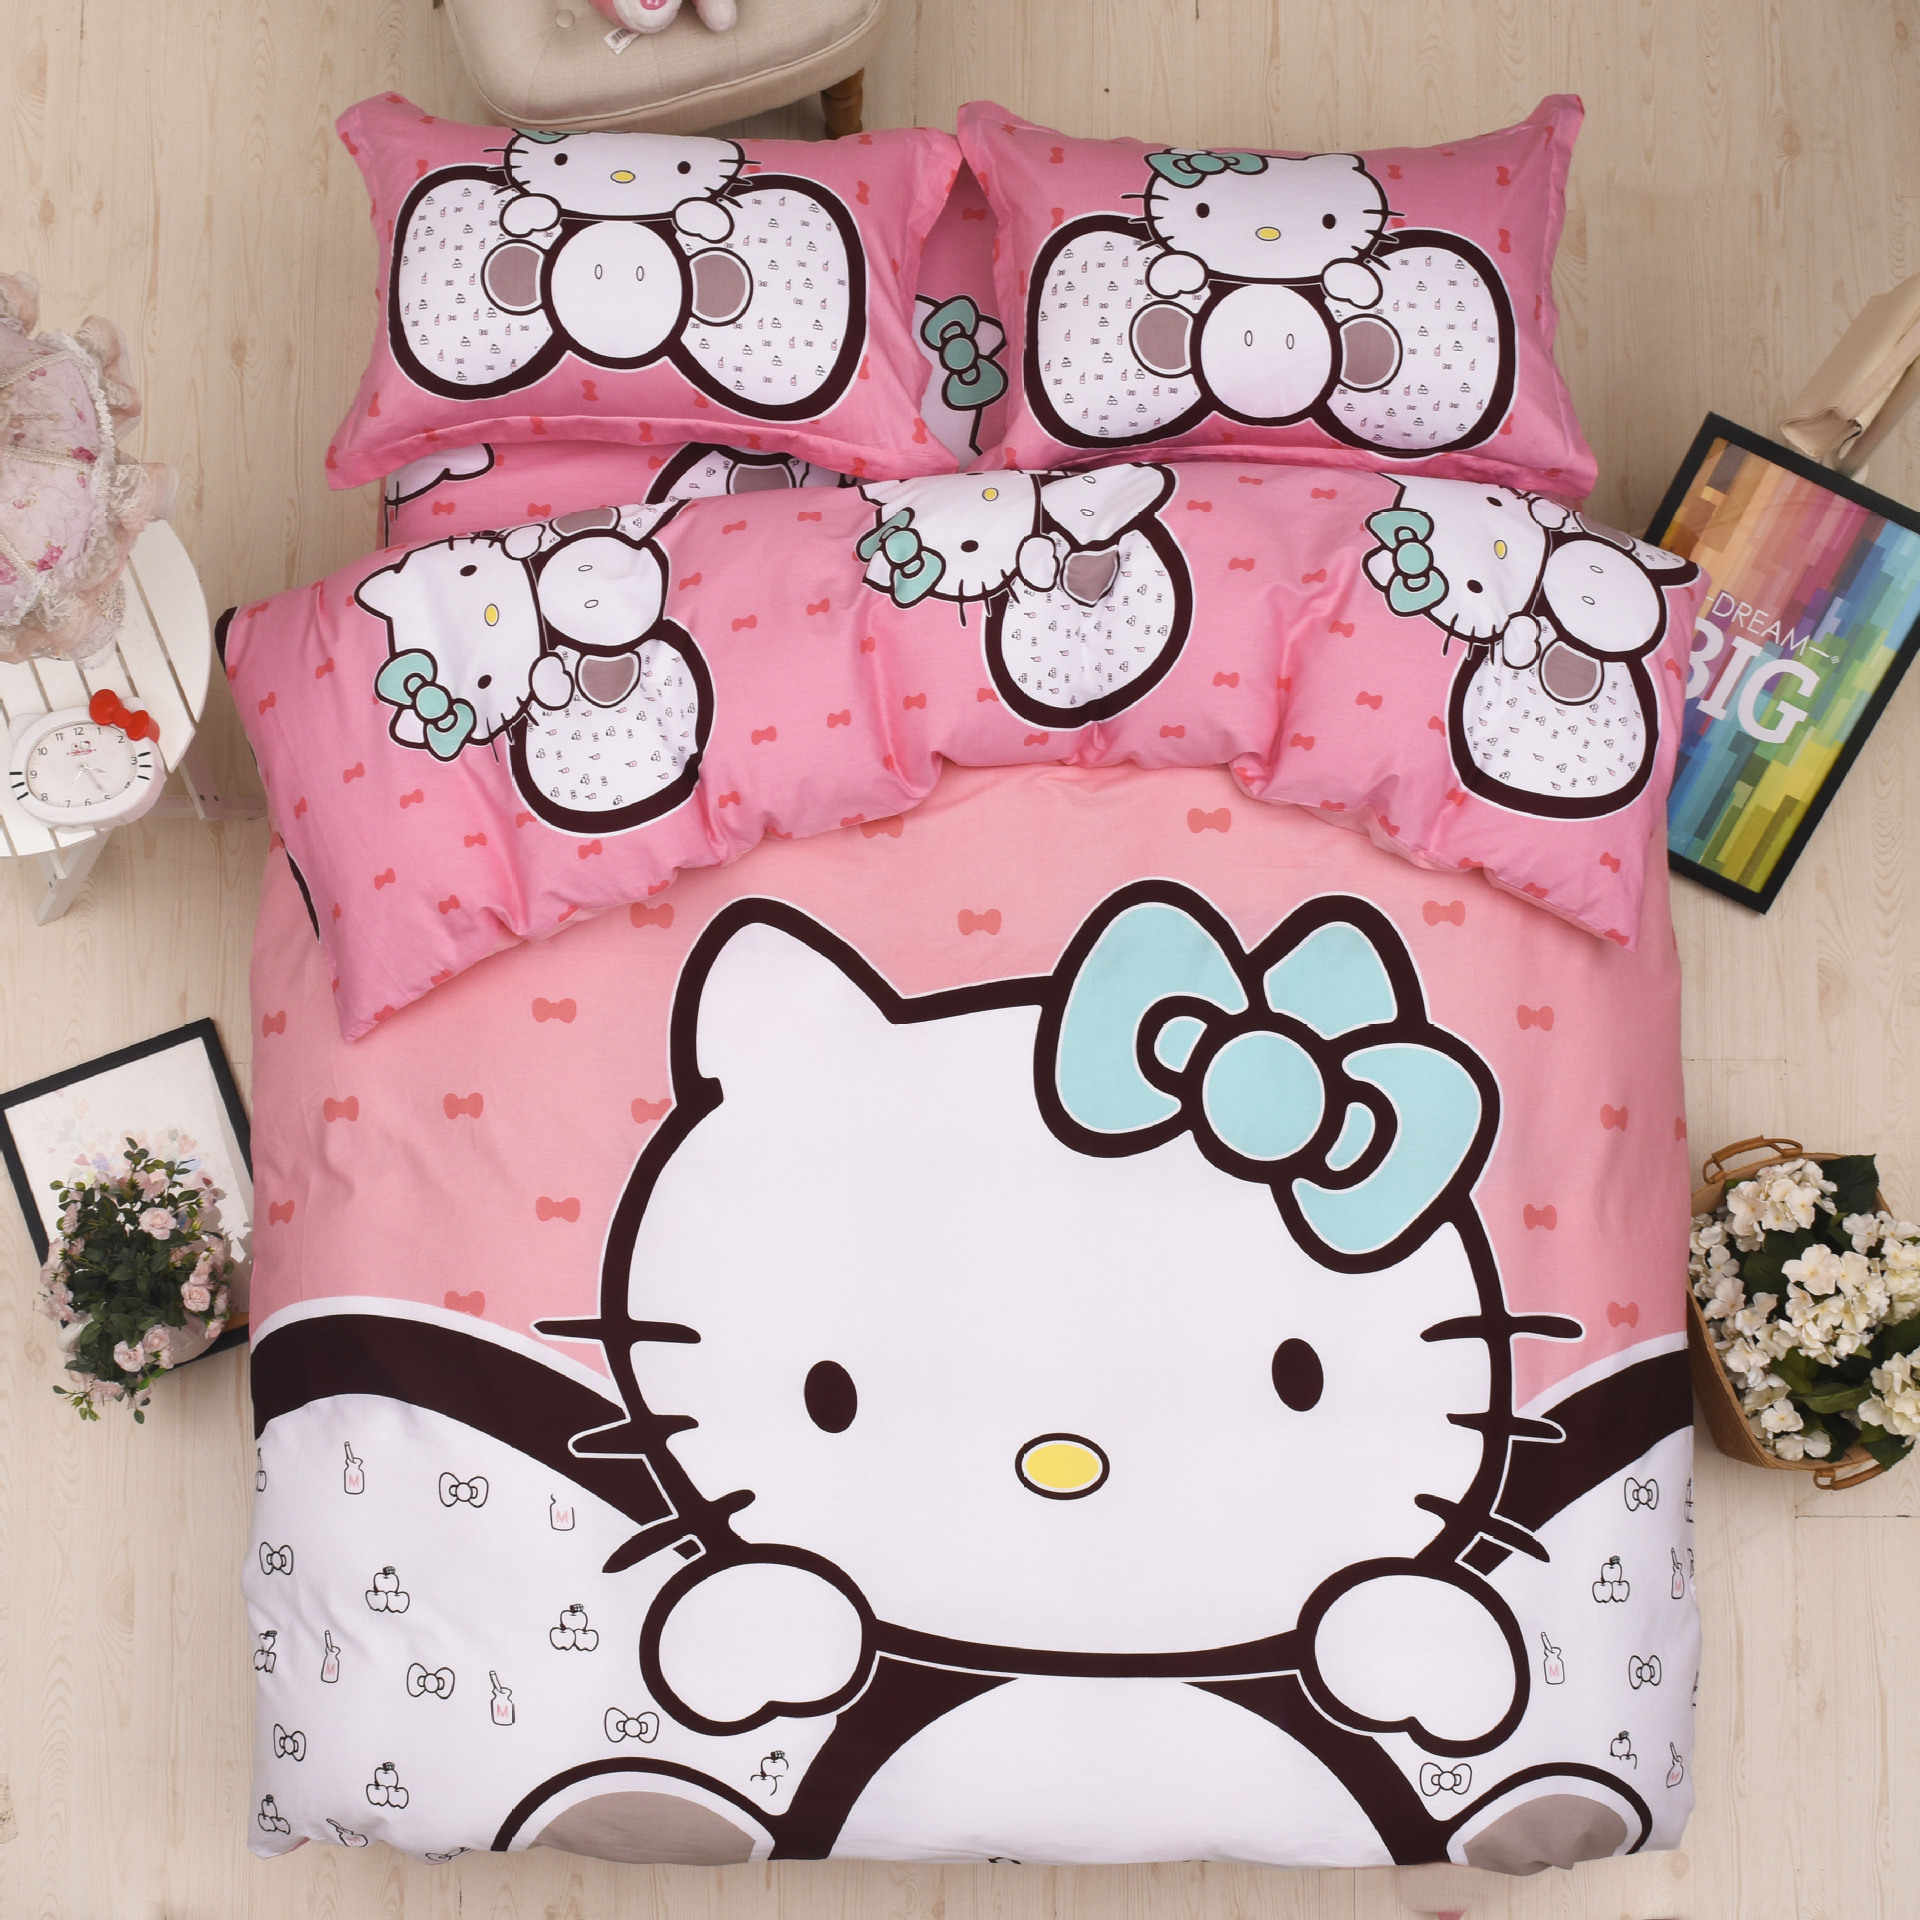 Bedding Set 100% cotton Hello Kitty Doraemon cartoon pink series love 4pcs/3pcs soft Duvet Cover Sets Bed Sheet Set Pillowcase